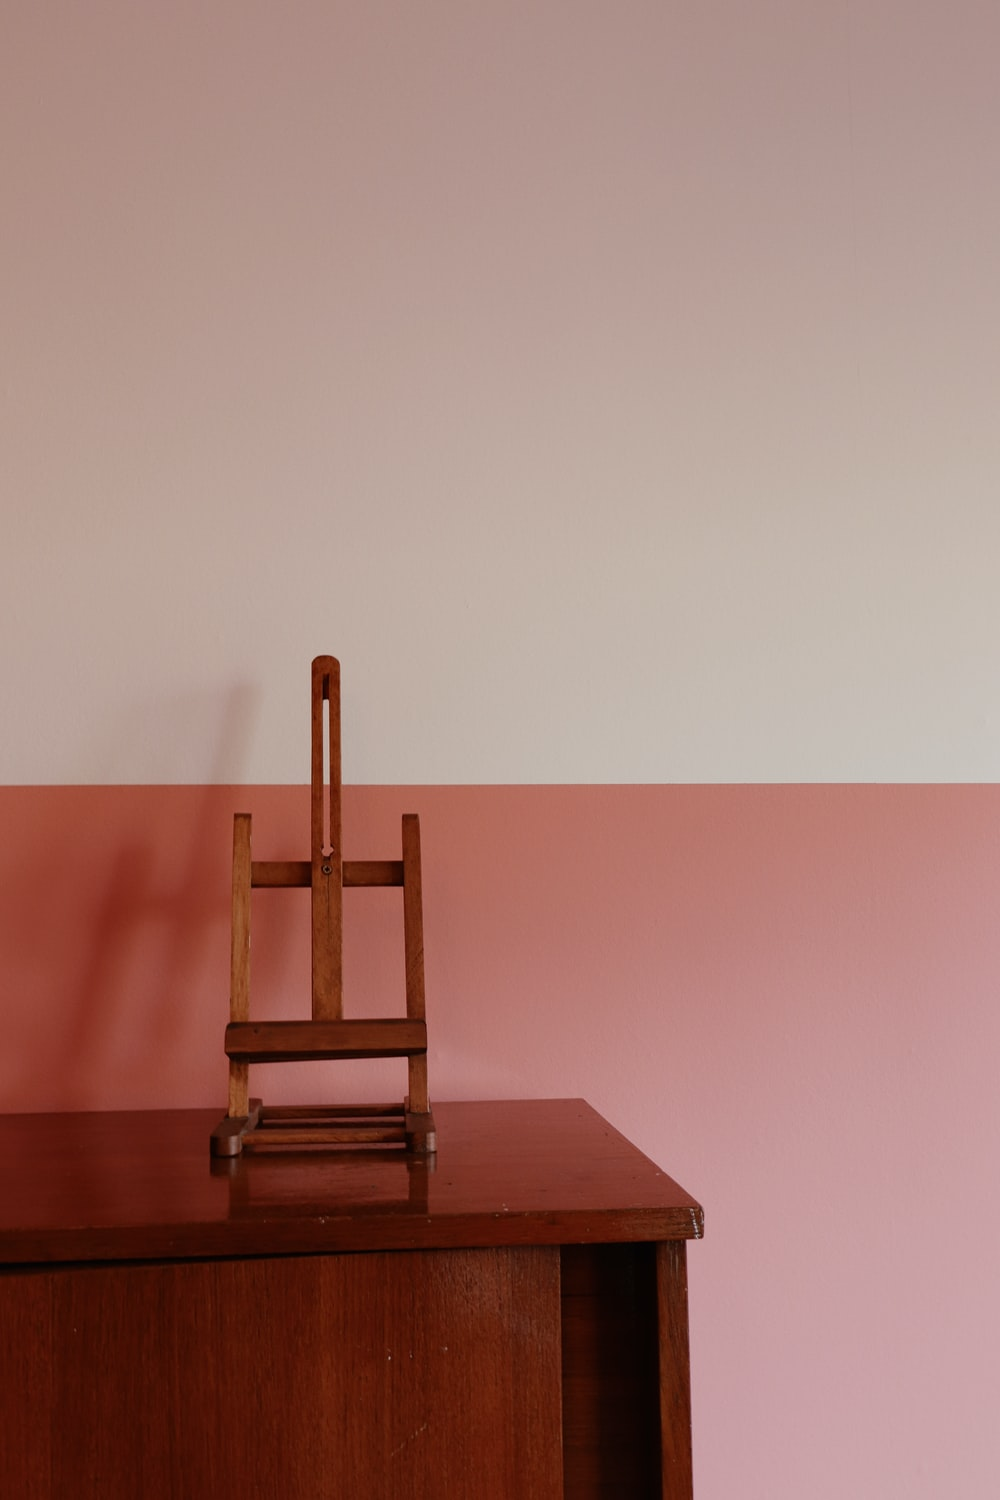 brown wooden chair on brown wooden table